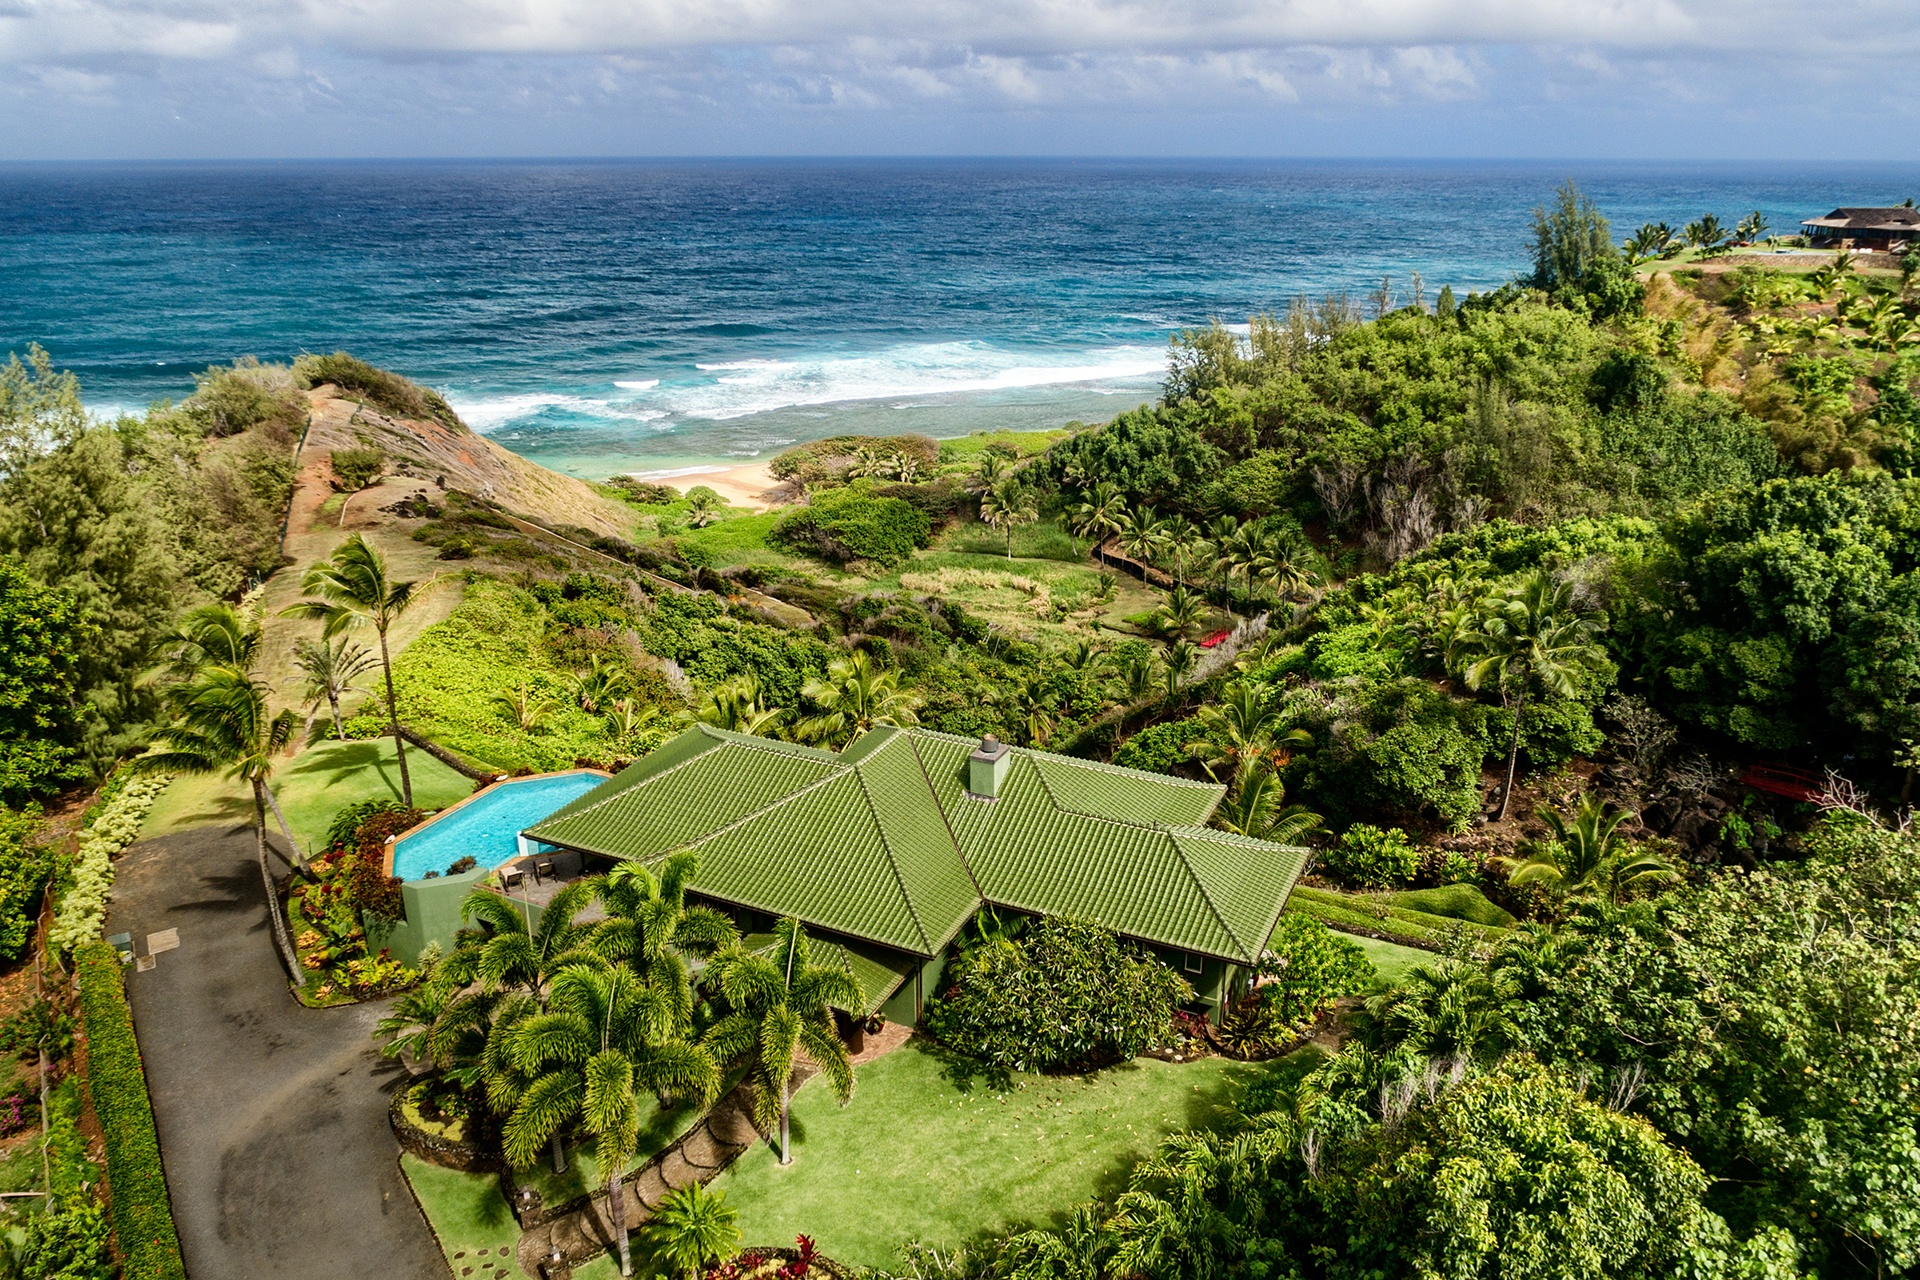 This lush estate enjoys a rare stretch of secluded beach on Kauai's cherished north shore.